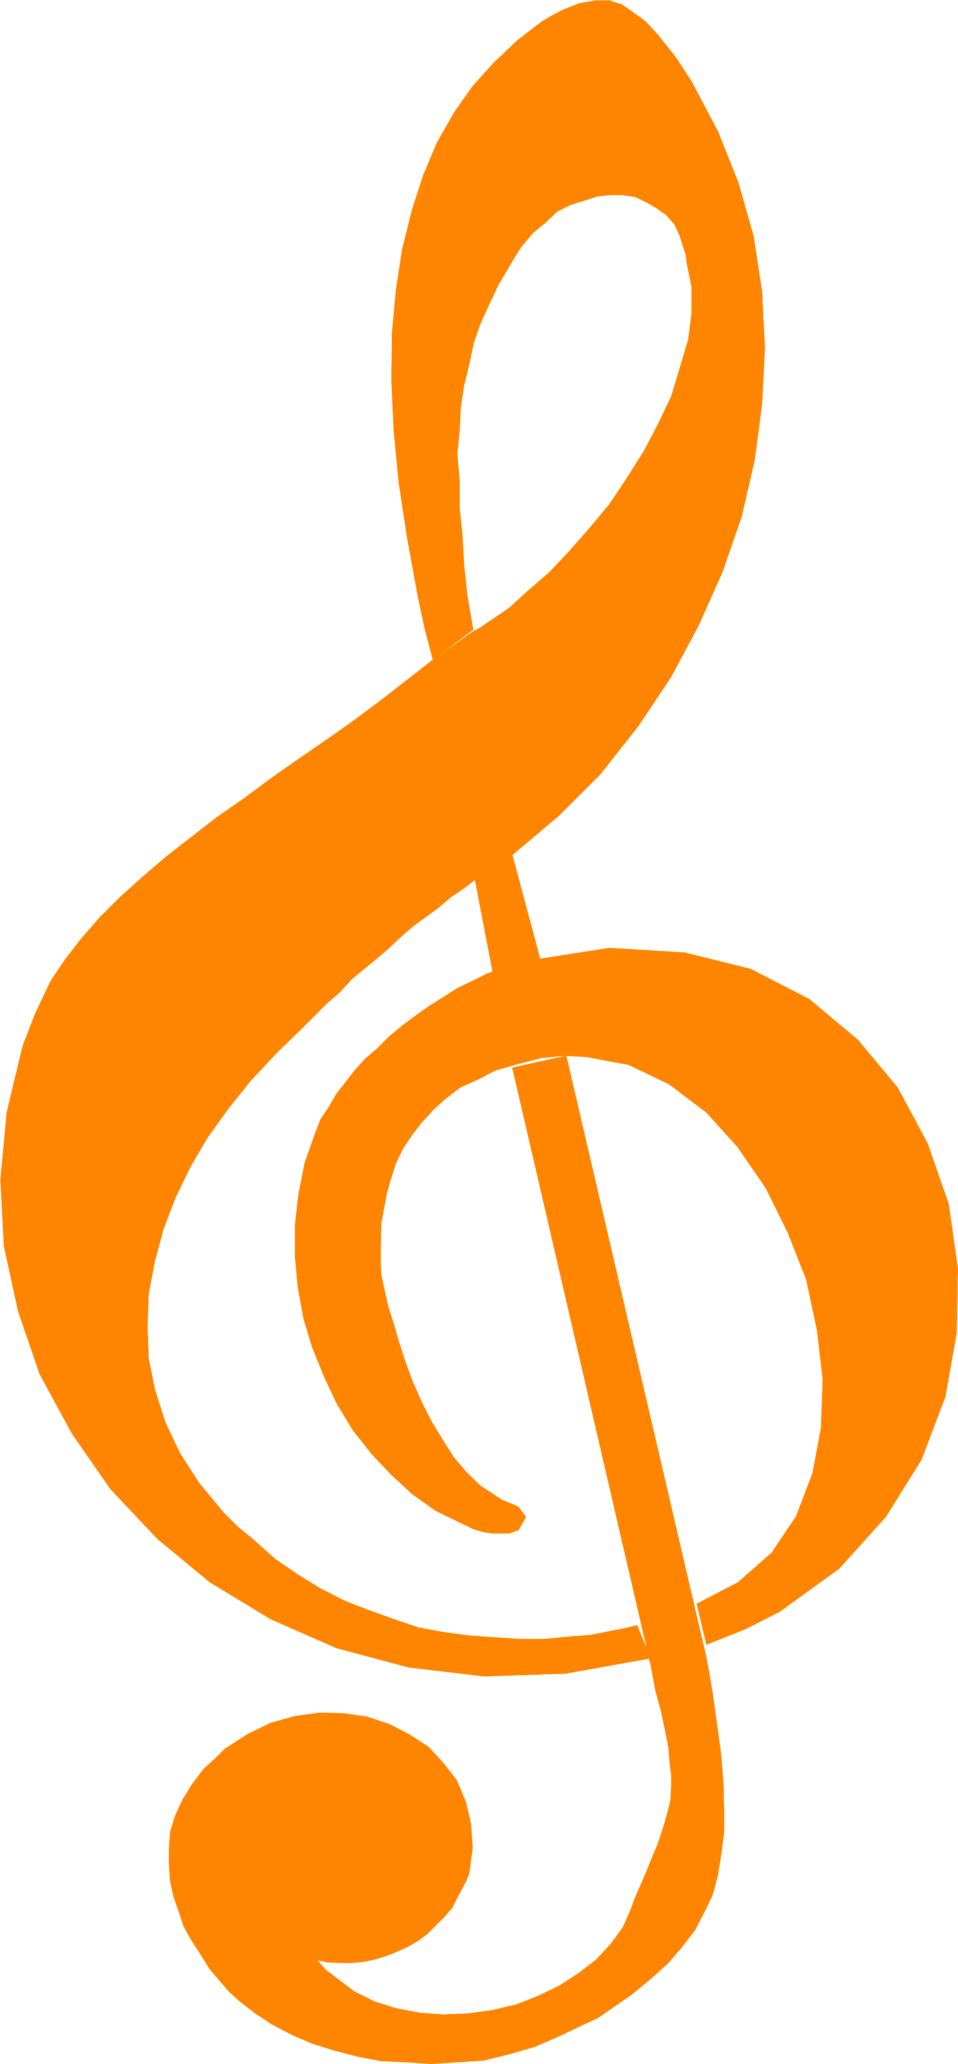 free clipart music note symbol - photo #50